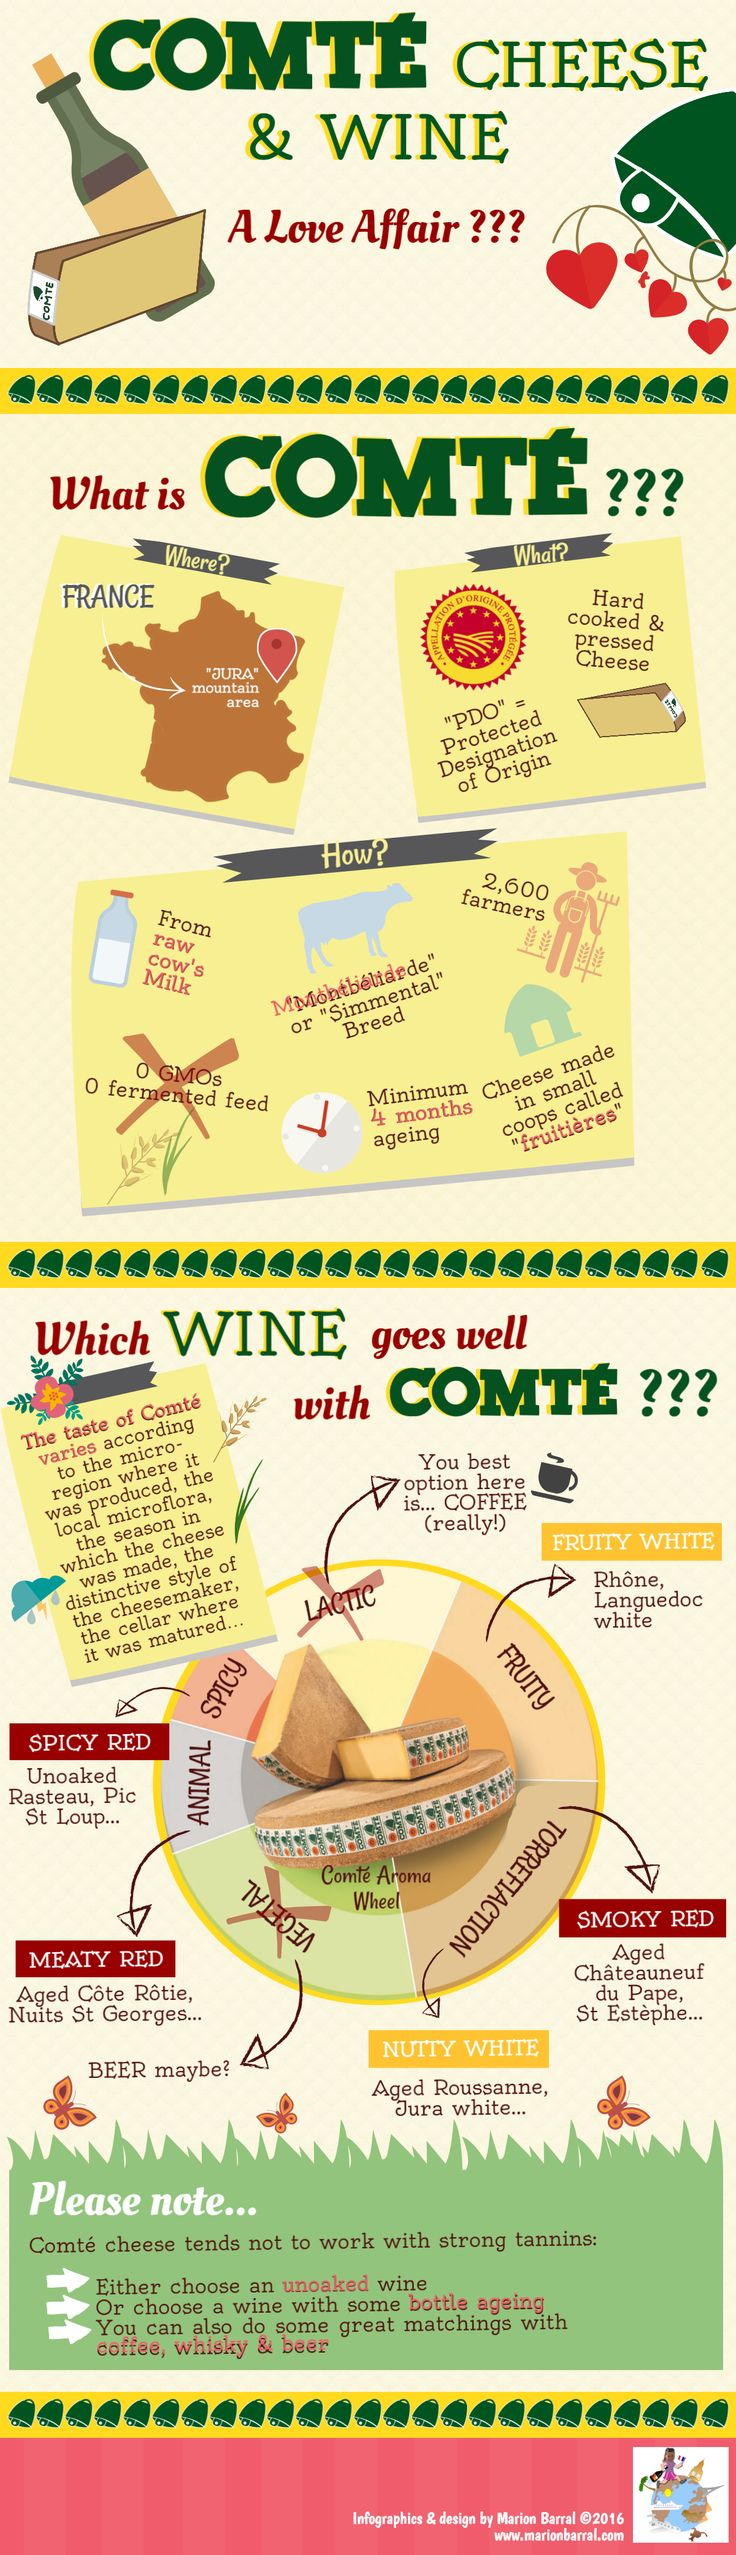 Comté Cheese & Wine: A Love Affair (infographics) | Marion's Blog